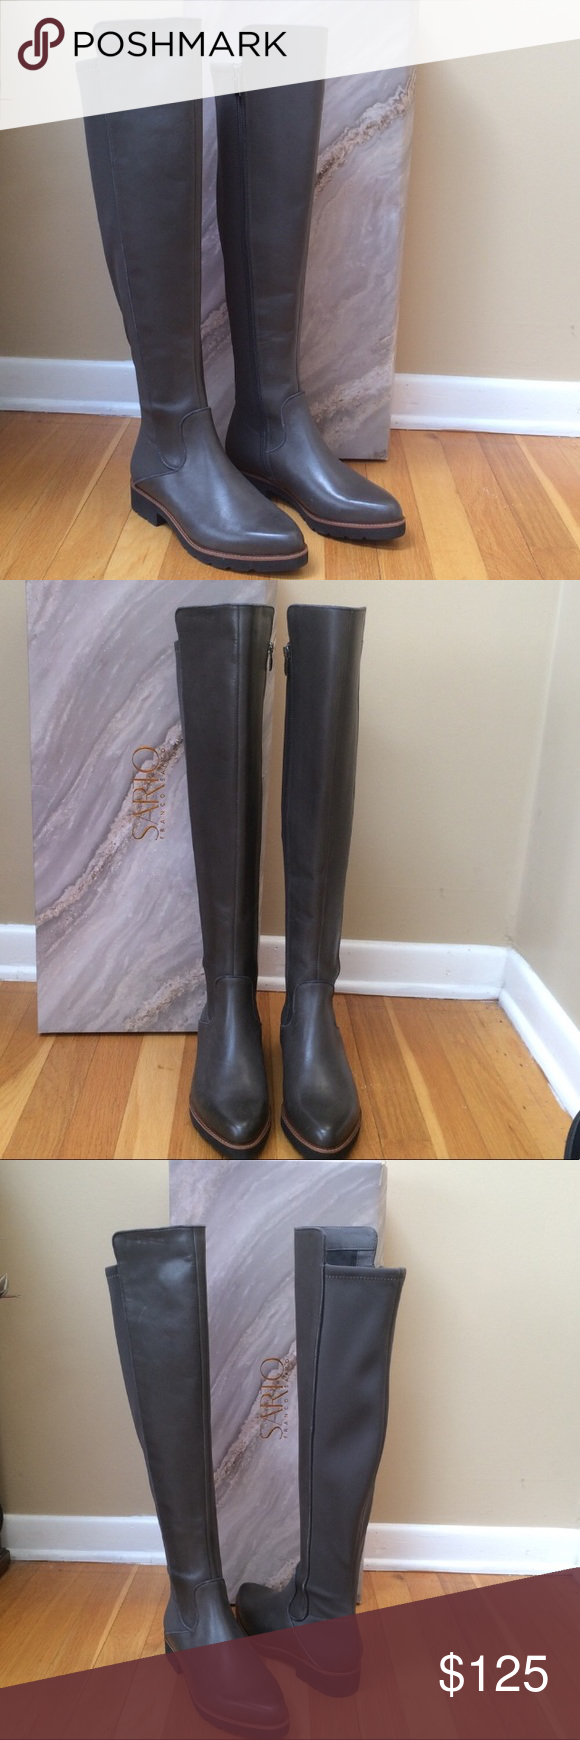 5dec4f2b4c6 FRANCO SARTO Benner Over the Knee Leather Boots FRANCO SARTO  Benner  Over  the Knee